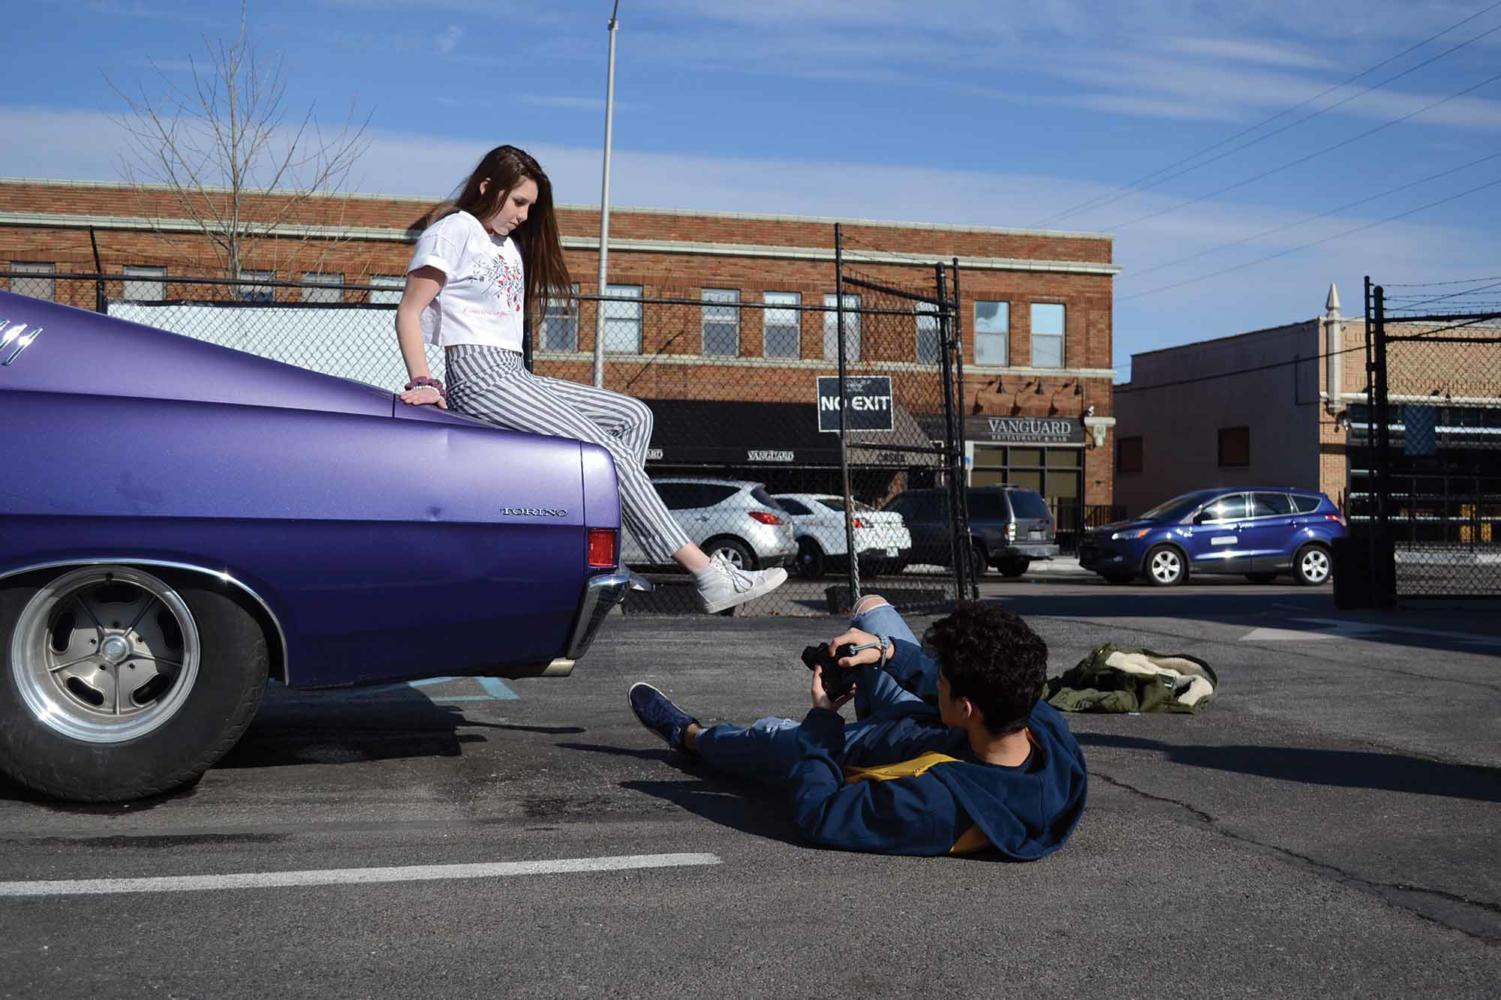 Sophomore Ayman Bolad takes a photo of sophomore Maclean Wood on a retro car. Bolad contacted Wood to collaborate on setting up the outdoor photo shoot.